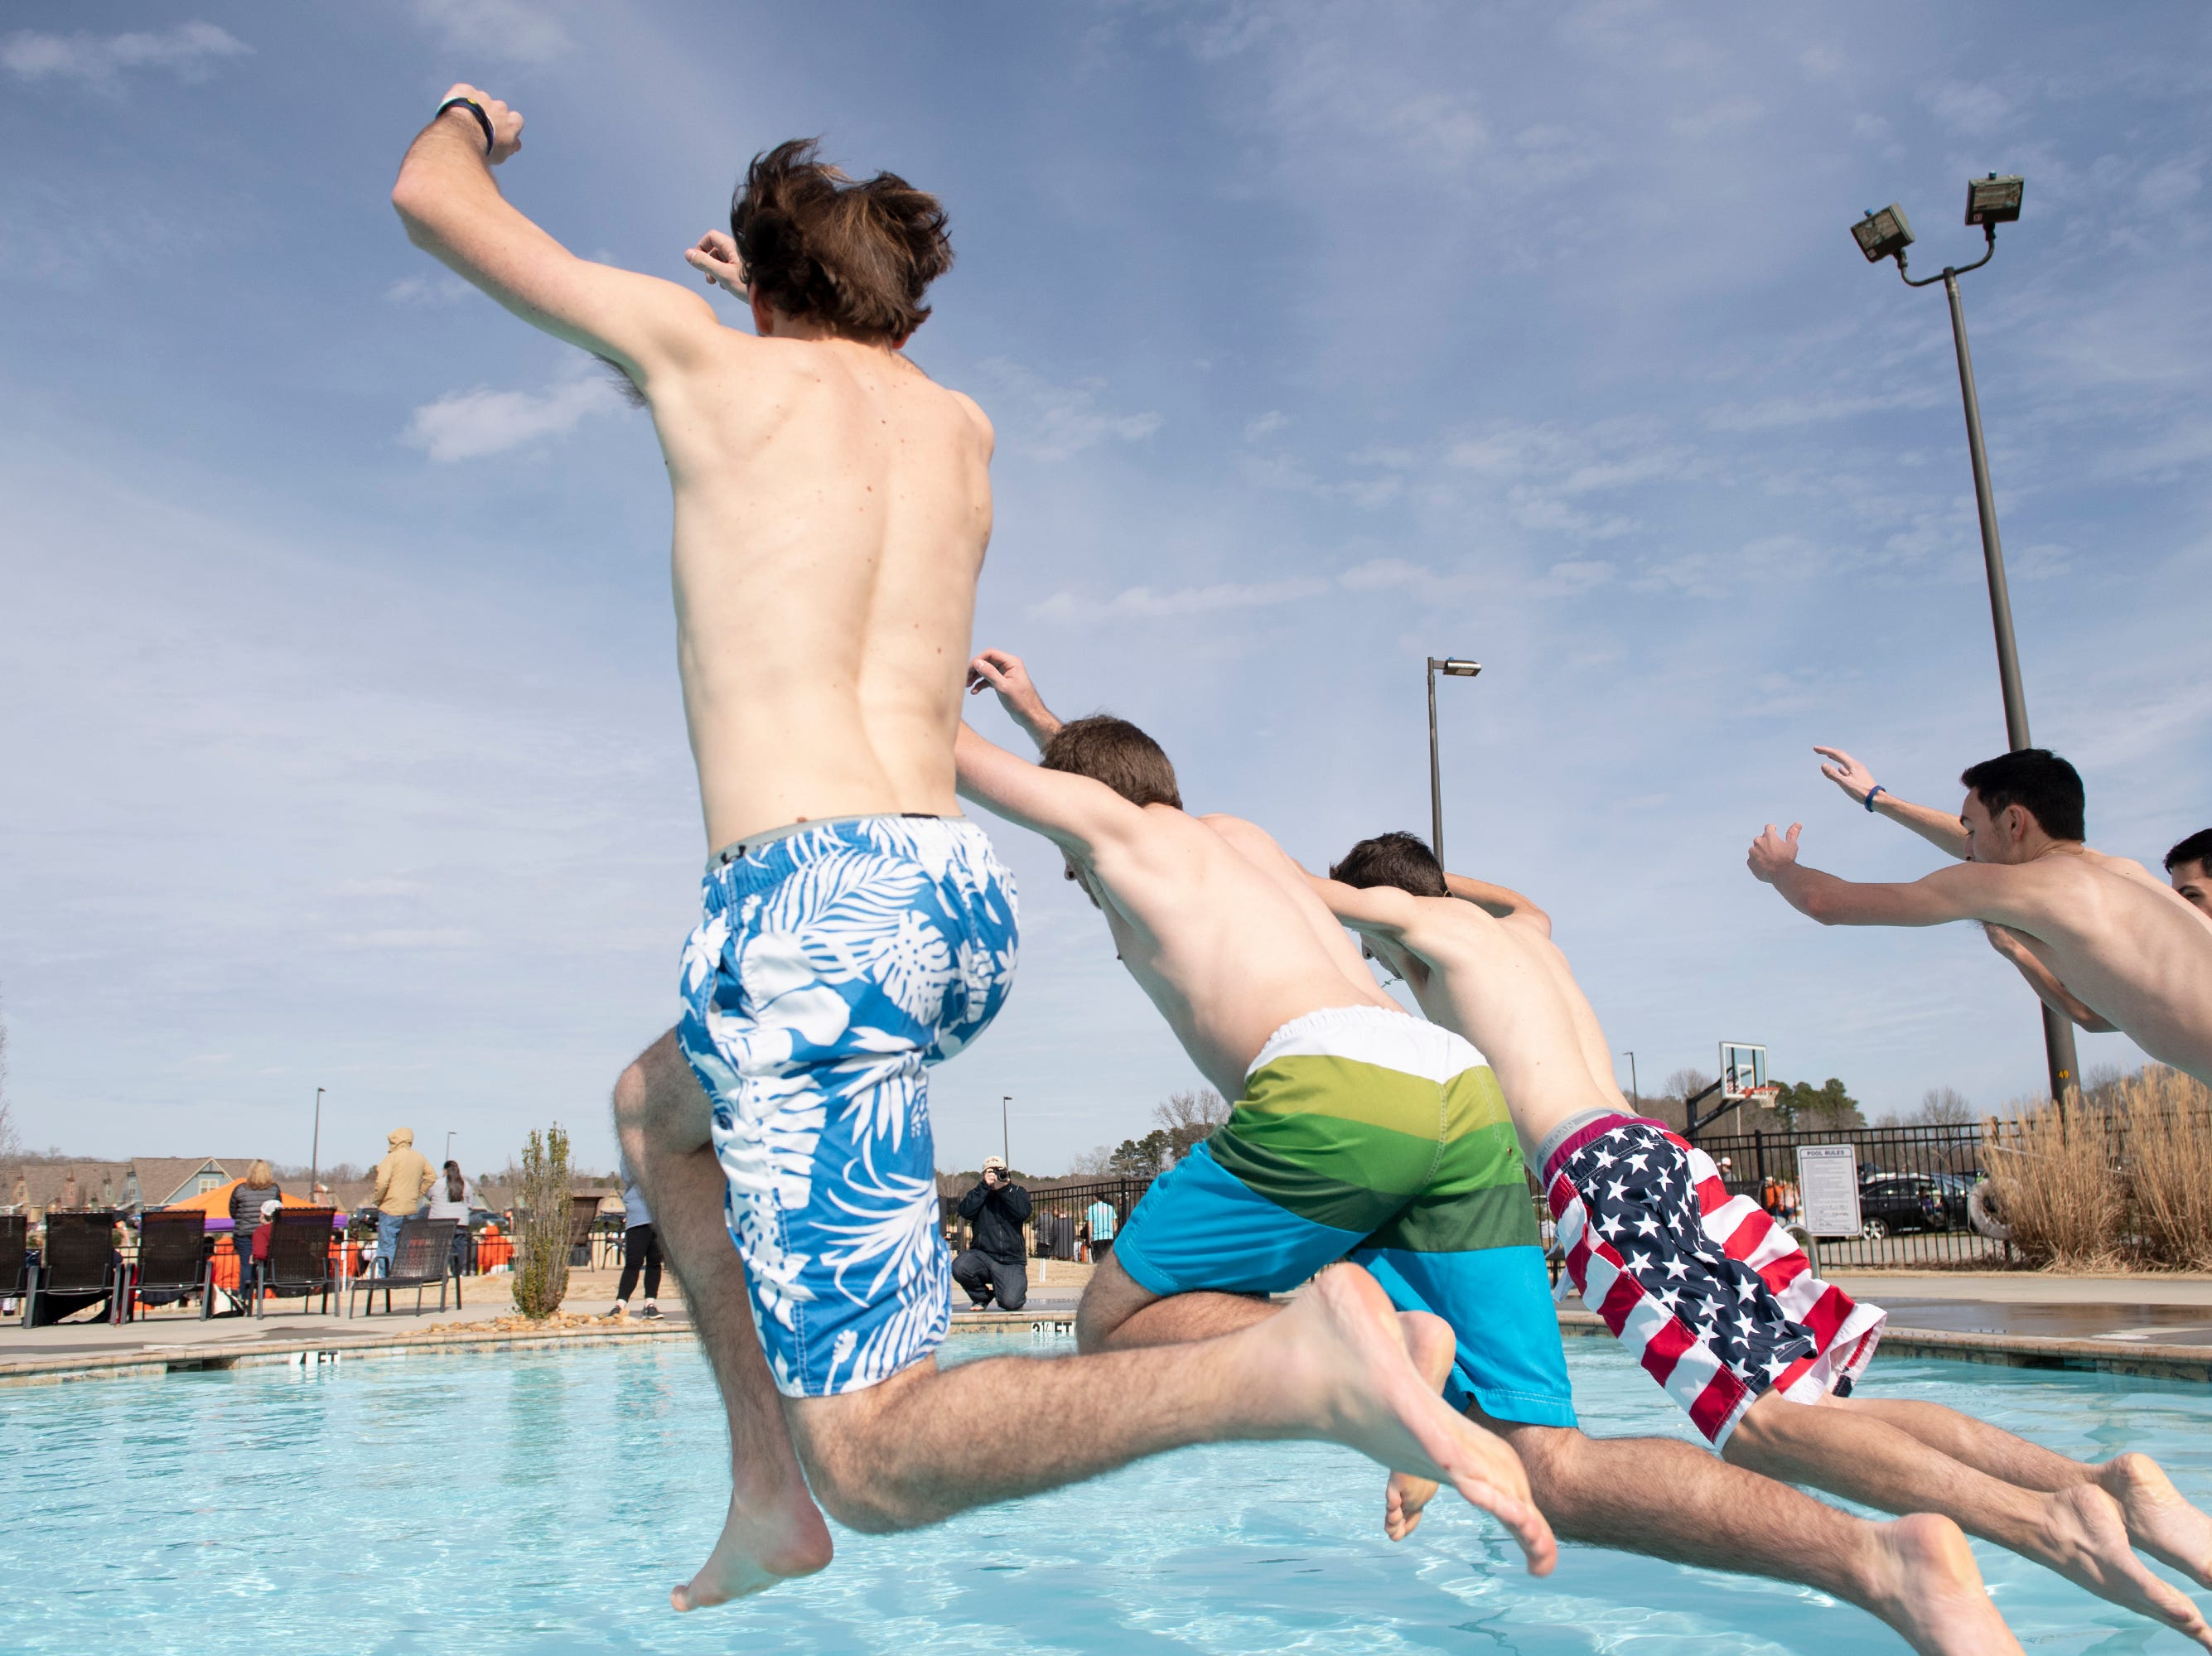 Participants in the 2019 Tiger Paw Polar Plunge jump into the cold pool at The Pier housing complex in Seneca Saturday, Feb. 9, 2019.